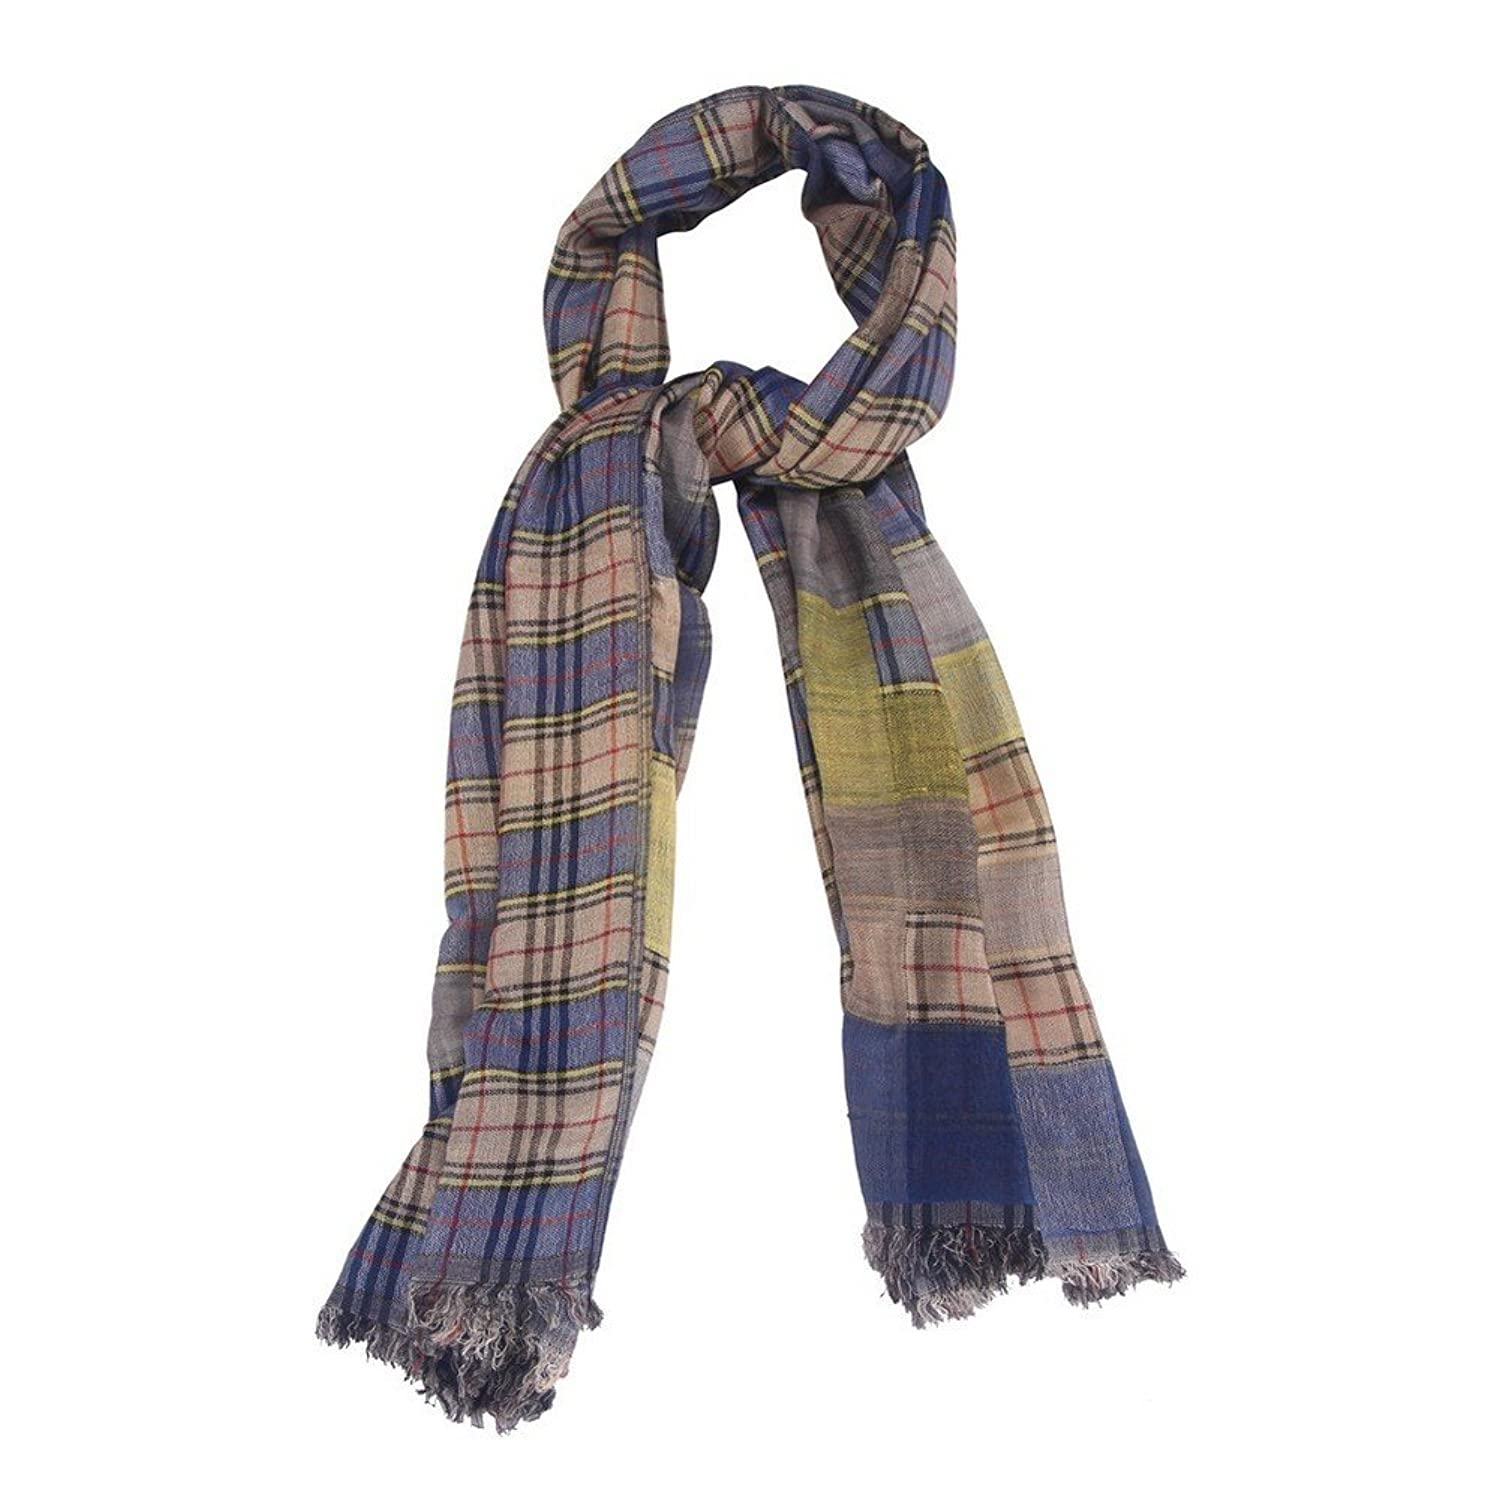 Scarf Soft Tartan Made With Cotton & Polyester by JOE COOL